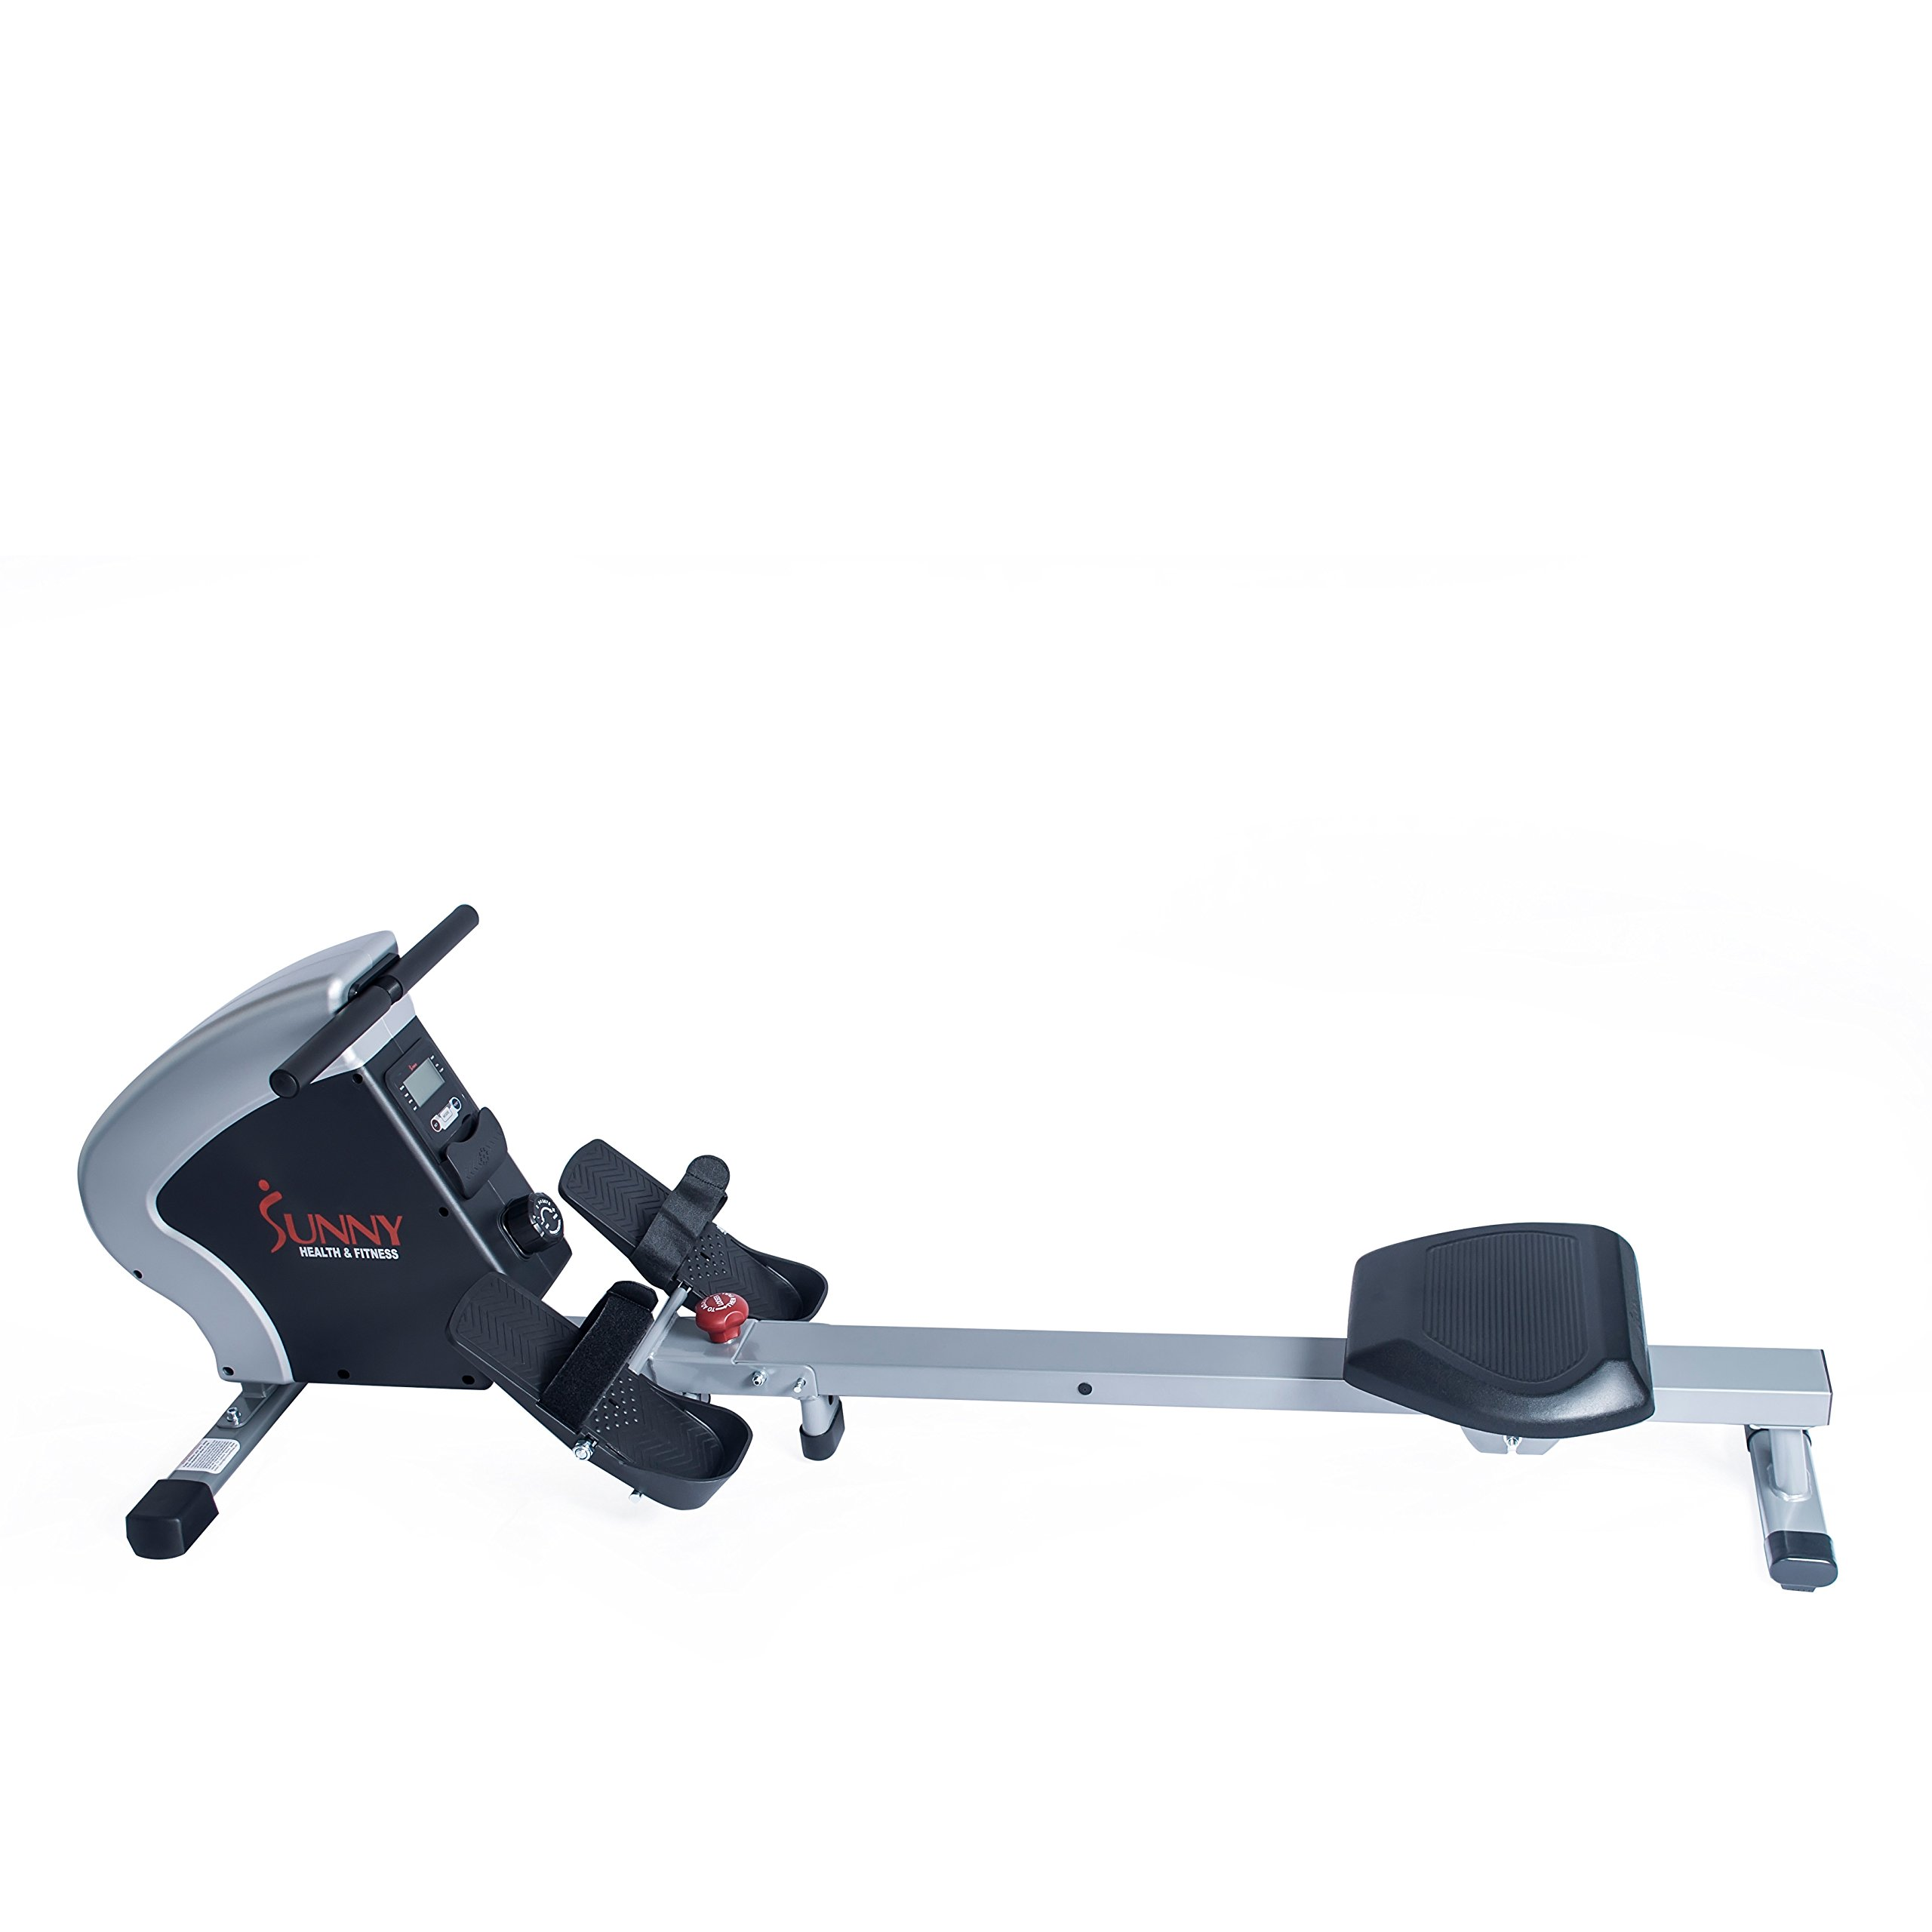 Sunny Health & Fitness Compact Folding Magnetic Rowing Machine Rower, LCD Monitor with Tablet Holder - Synergy Power Motion - SF-RW5801 by Sunny Health & Fitness (Image #2)